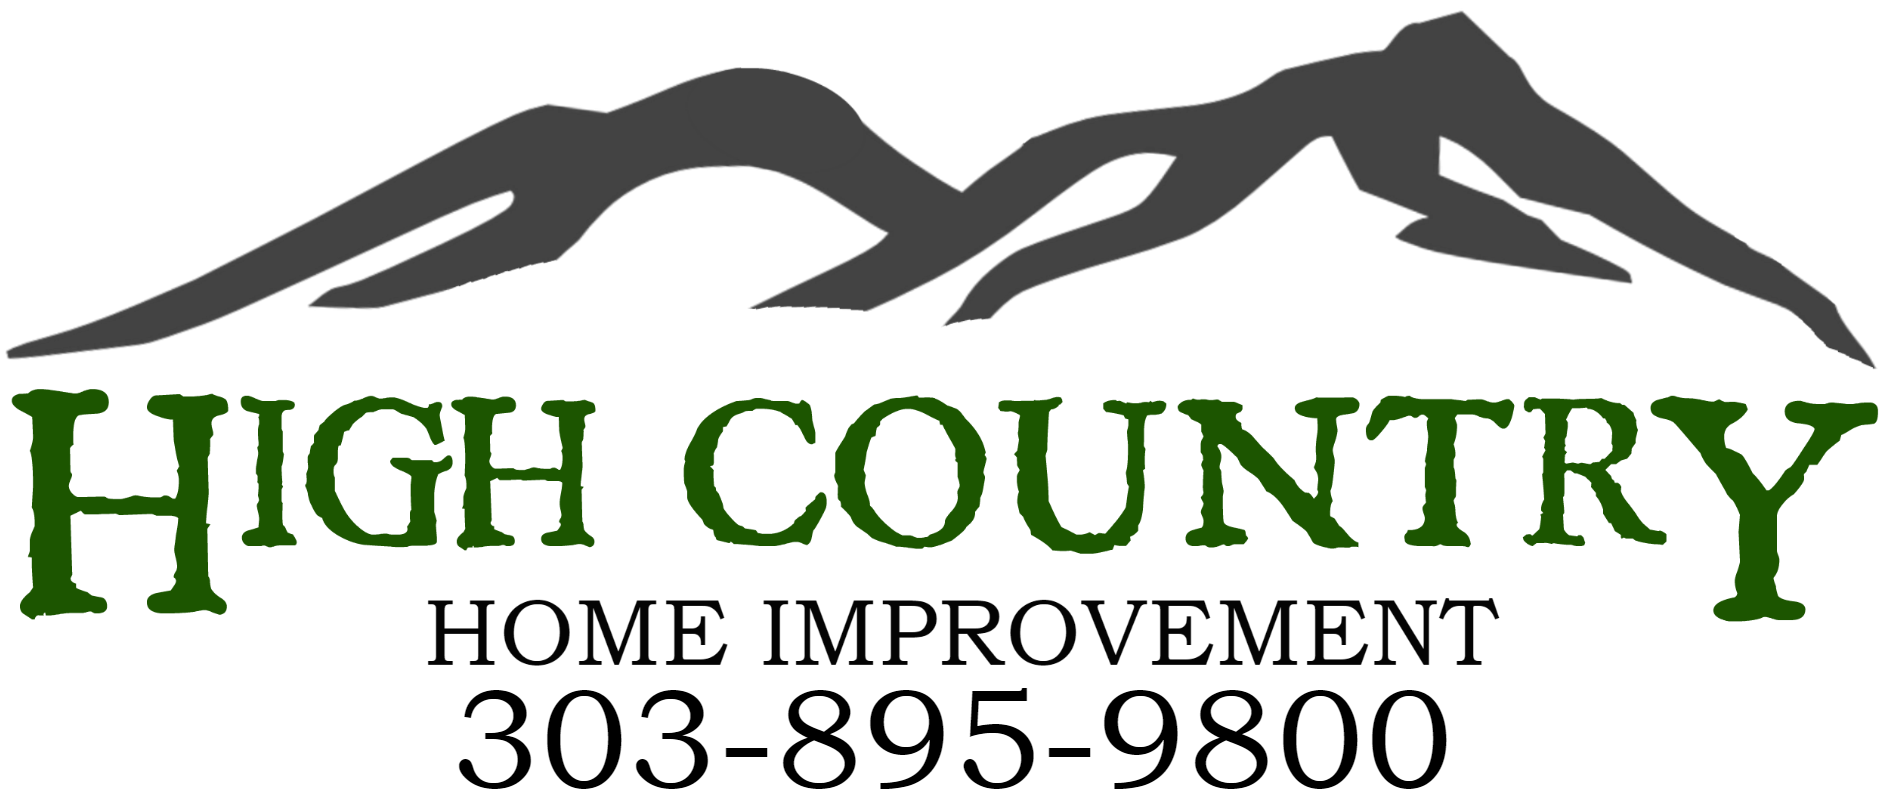 High Country Home Improvement